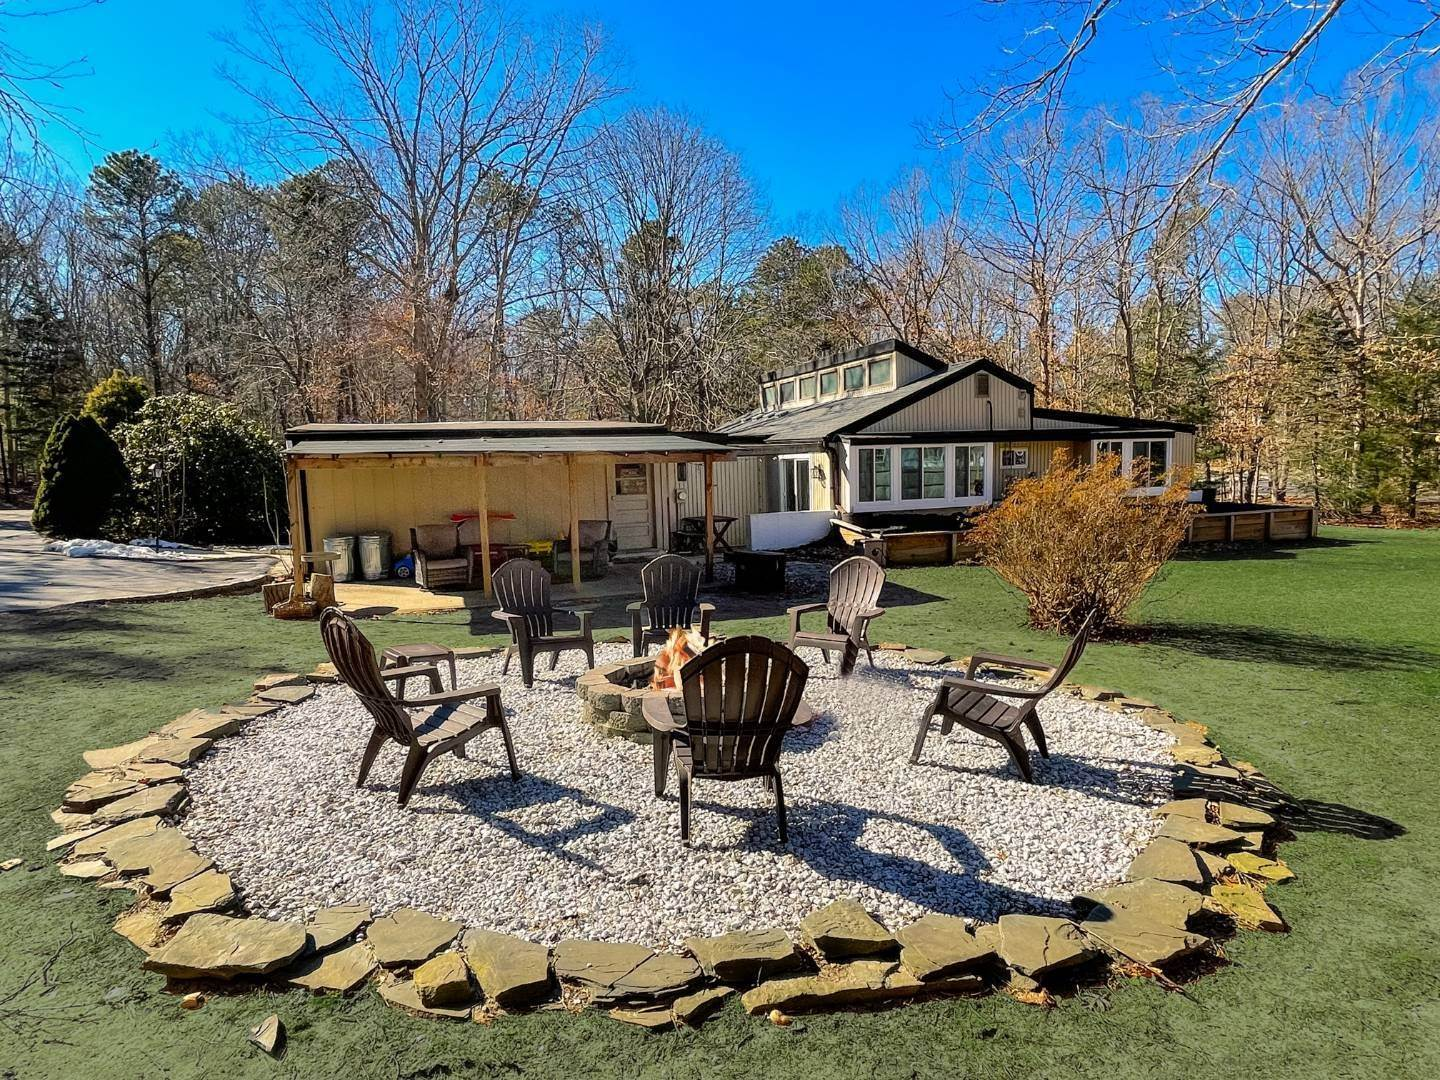 Single Family Home for Sale at Turn-Key Updated Ranch 5 Florence Drive, Manorville, NY 11949